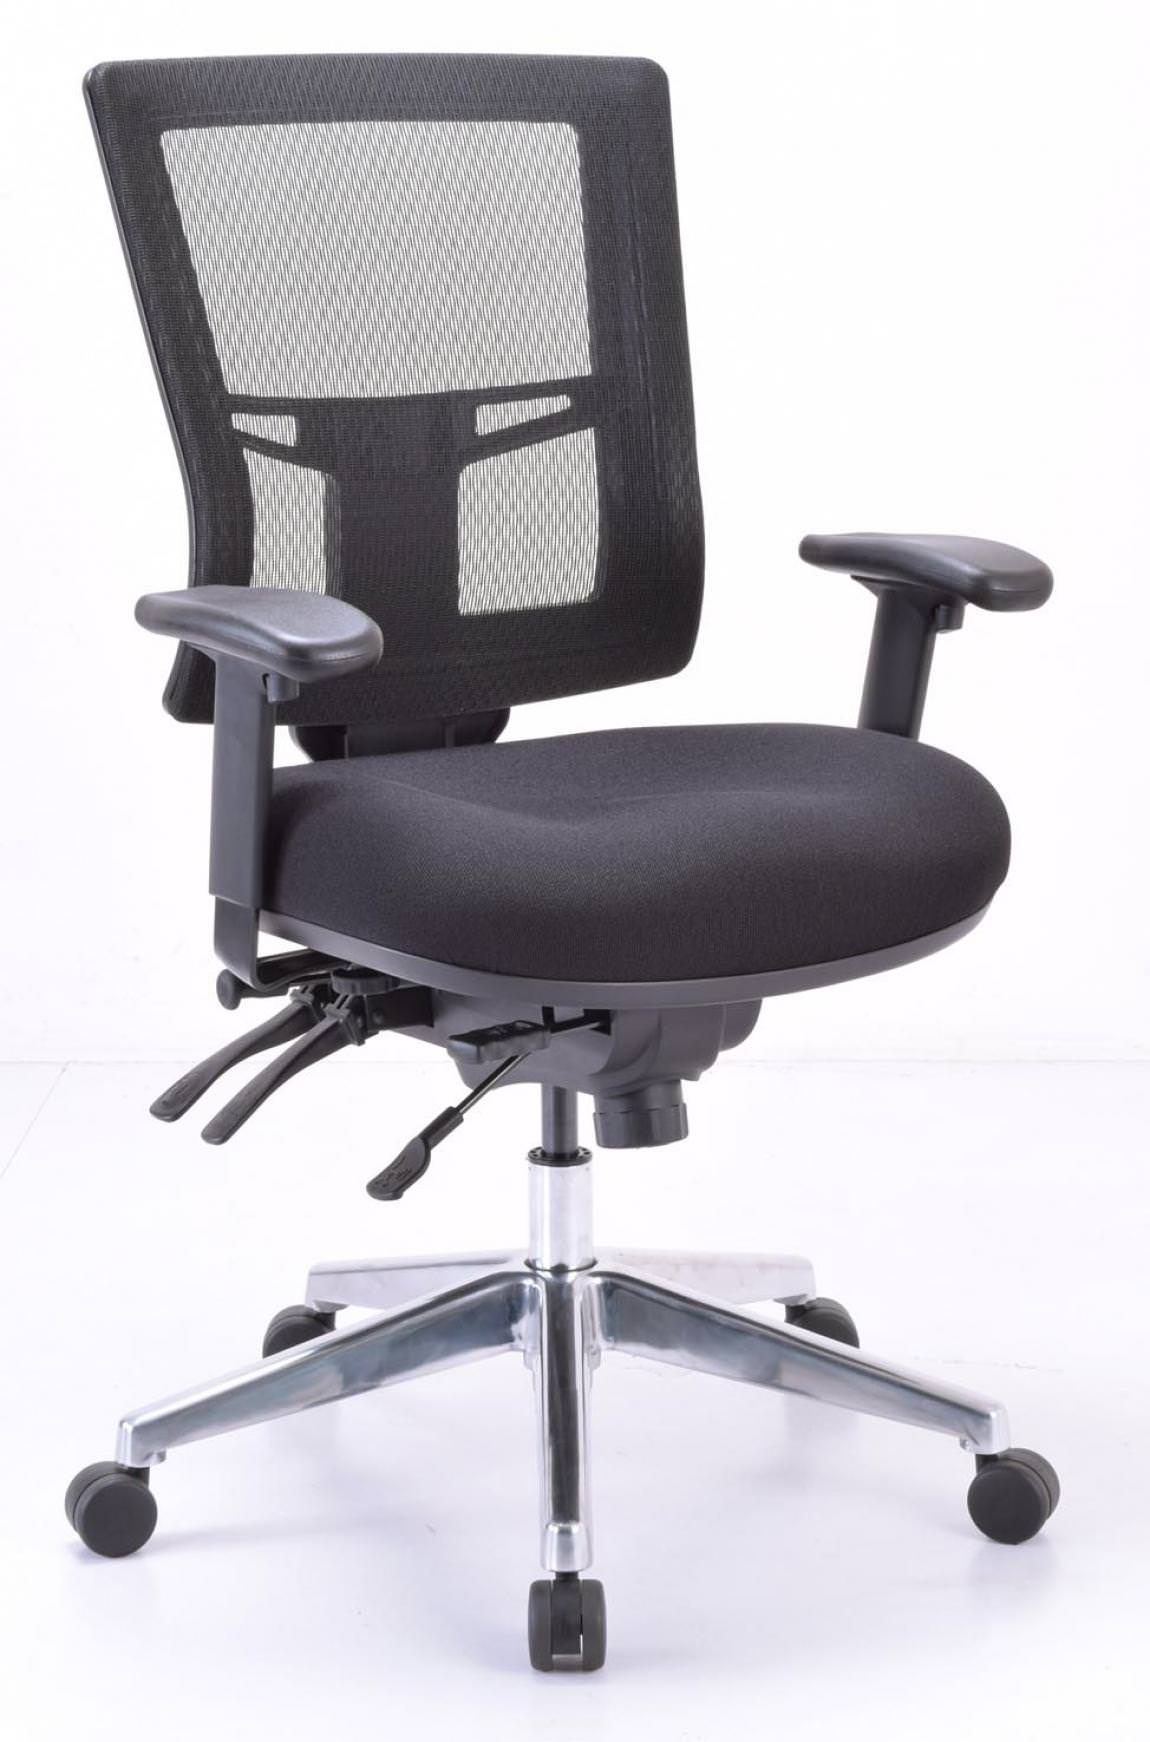 camo office chair sayl review big and tall 500 lbs capacity